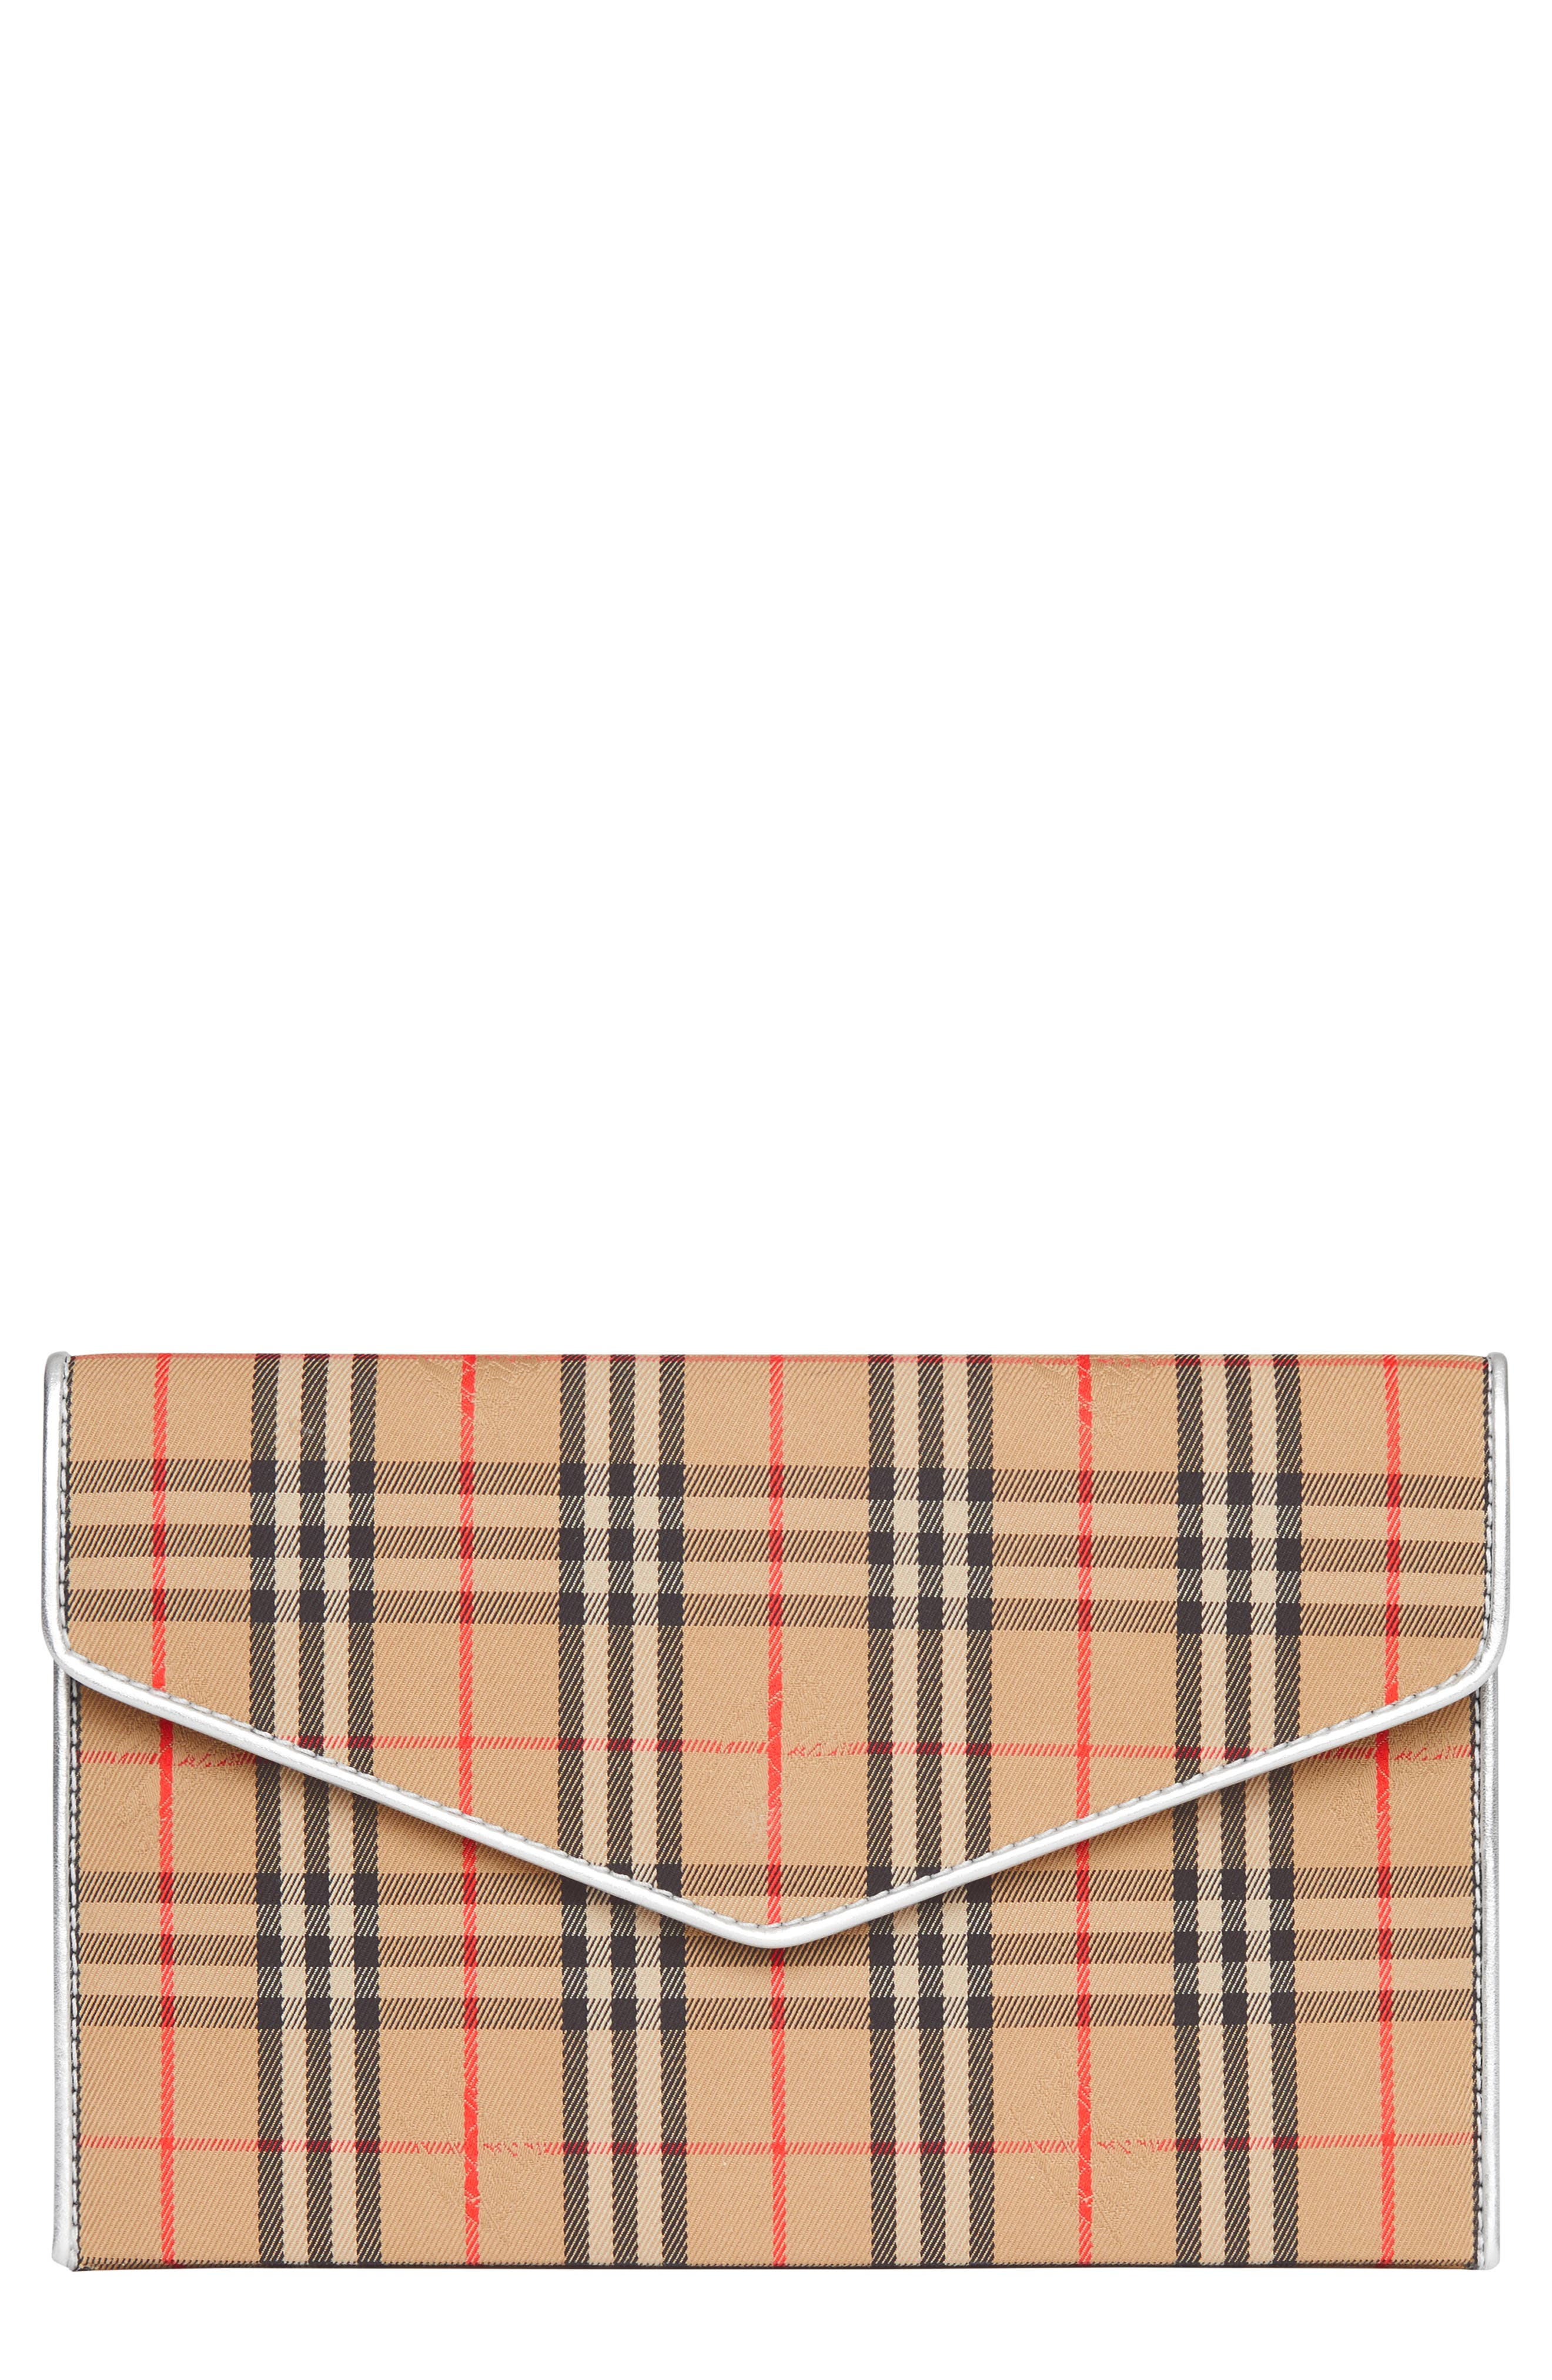 1983 Check Cotton & Leather Envelope Clutch,                             Main thumbnail 1, color,                             ANTIQUE YELLOW/ SILVER